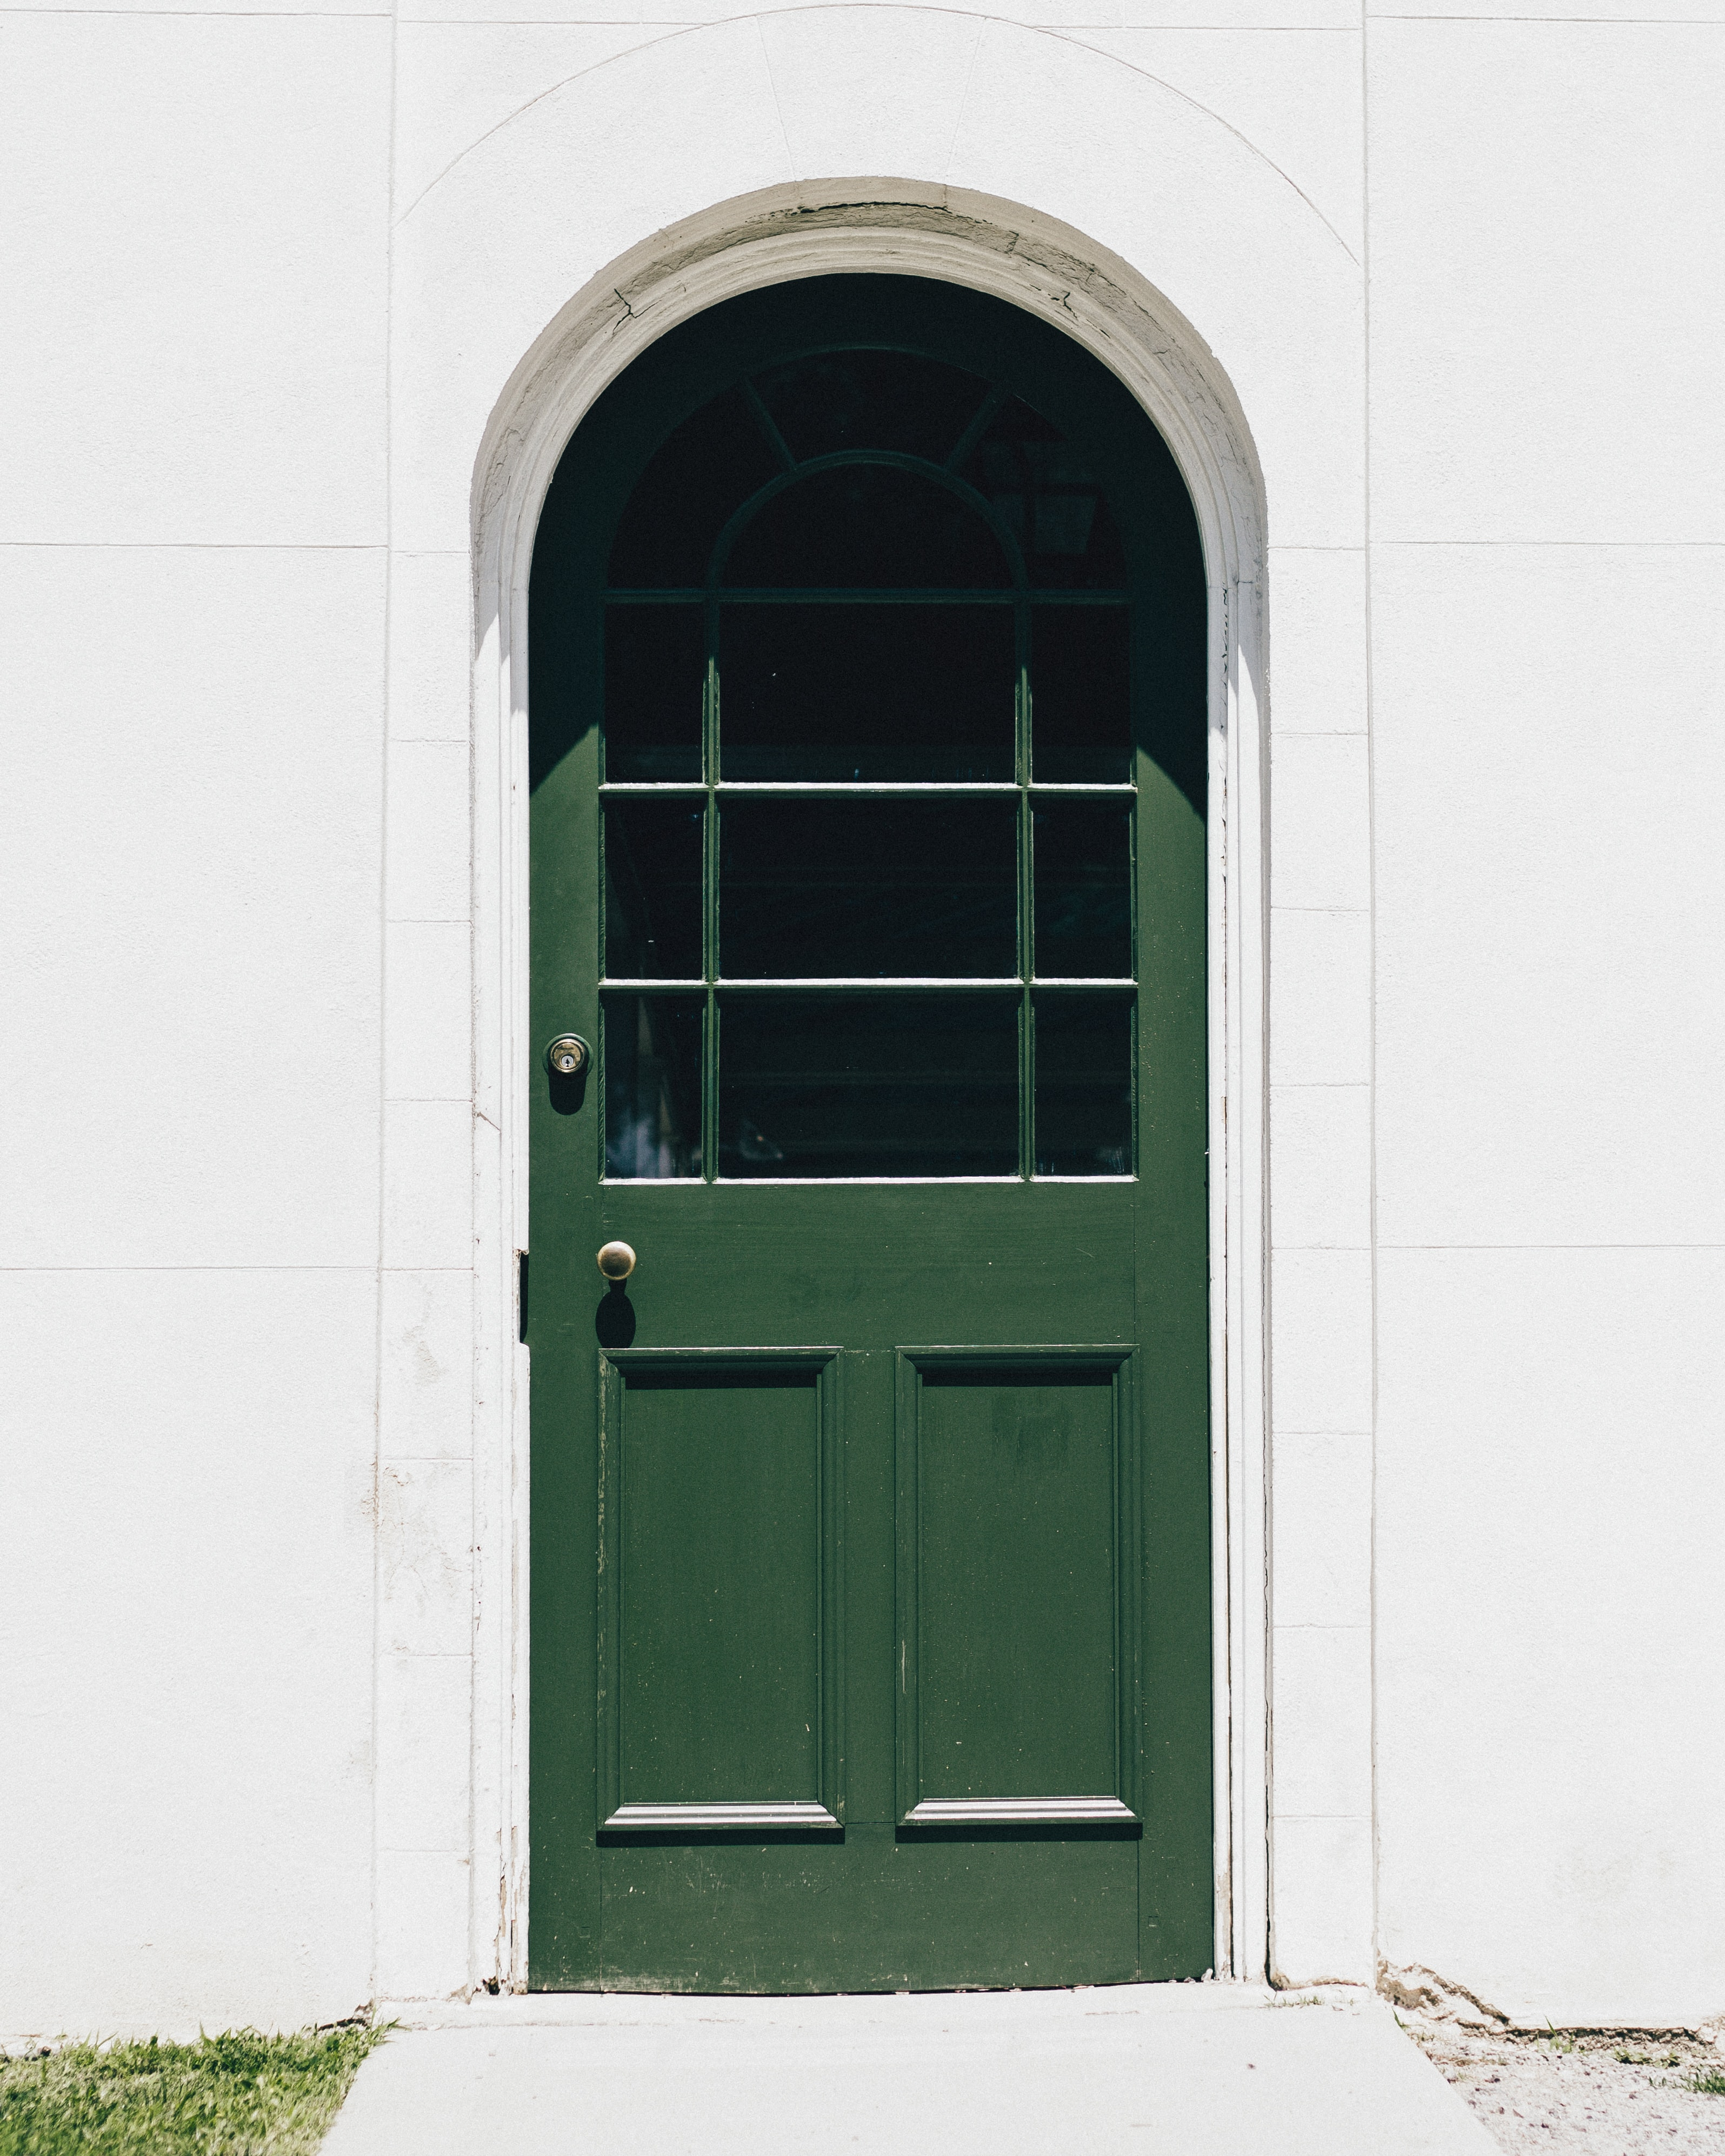 White arched doorway with a green door and windows on the top half and grass next to the sidewalk